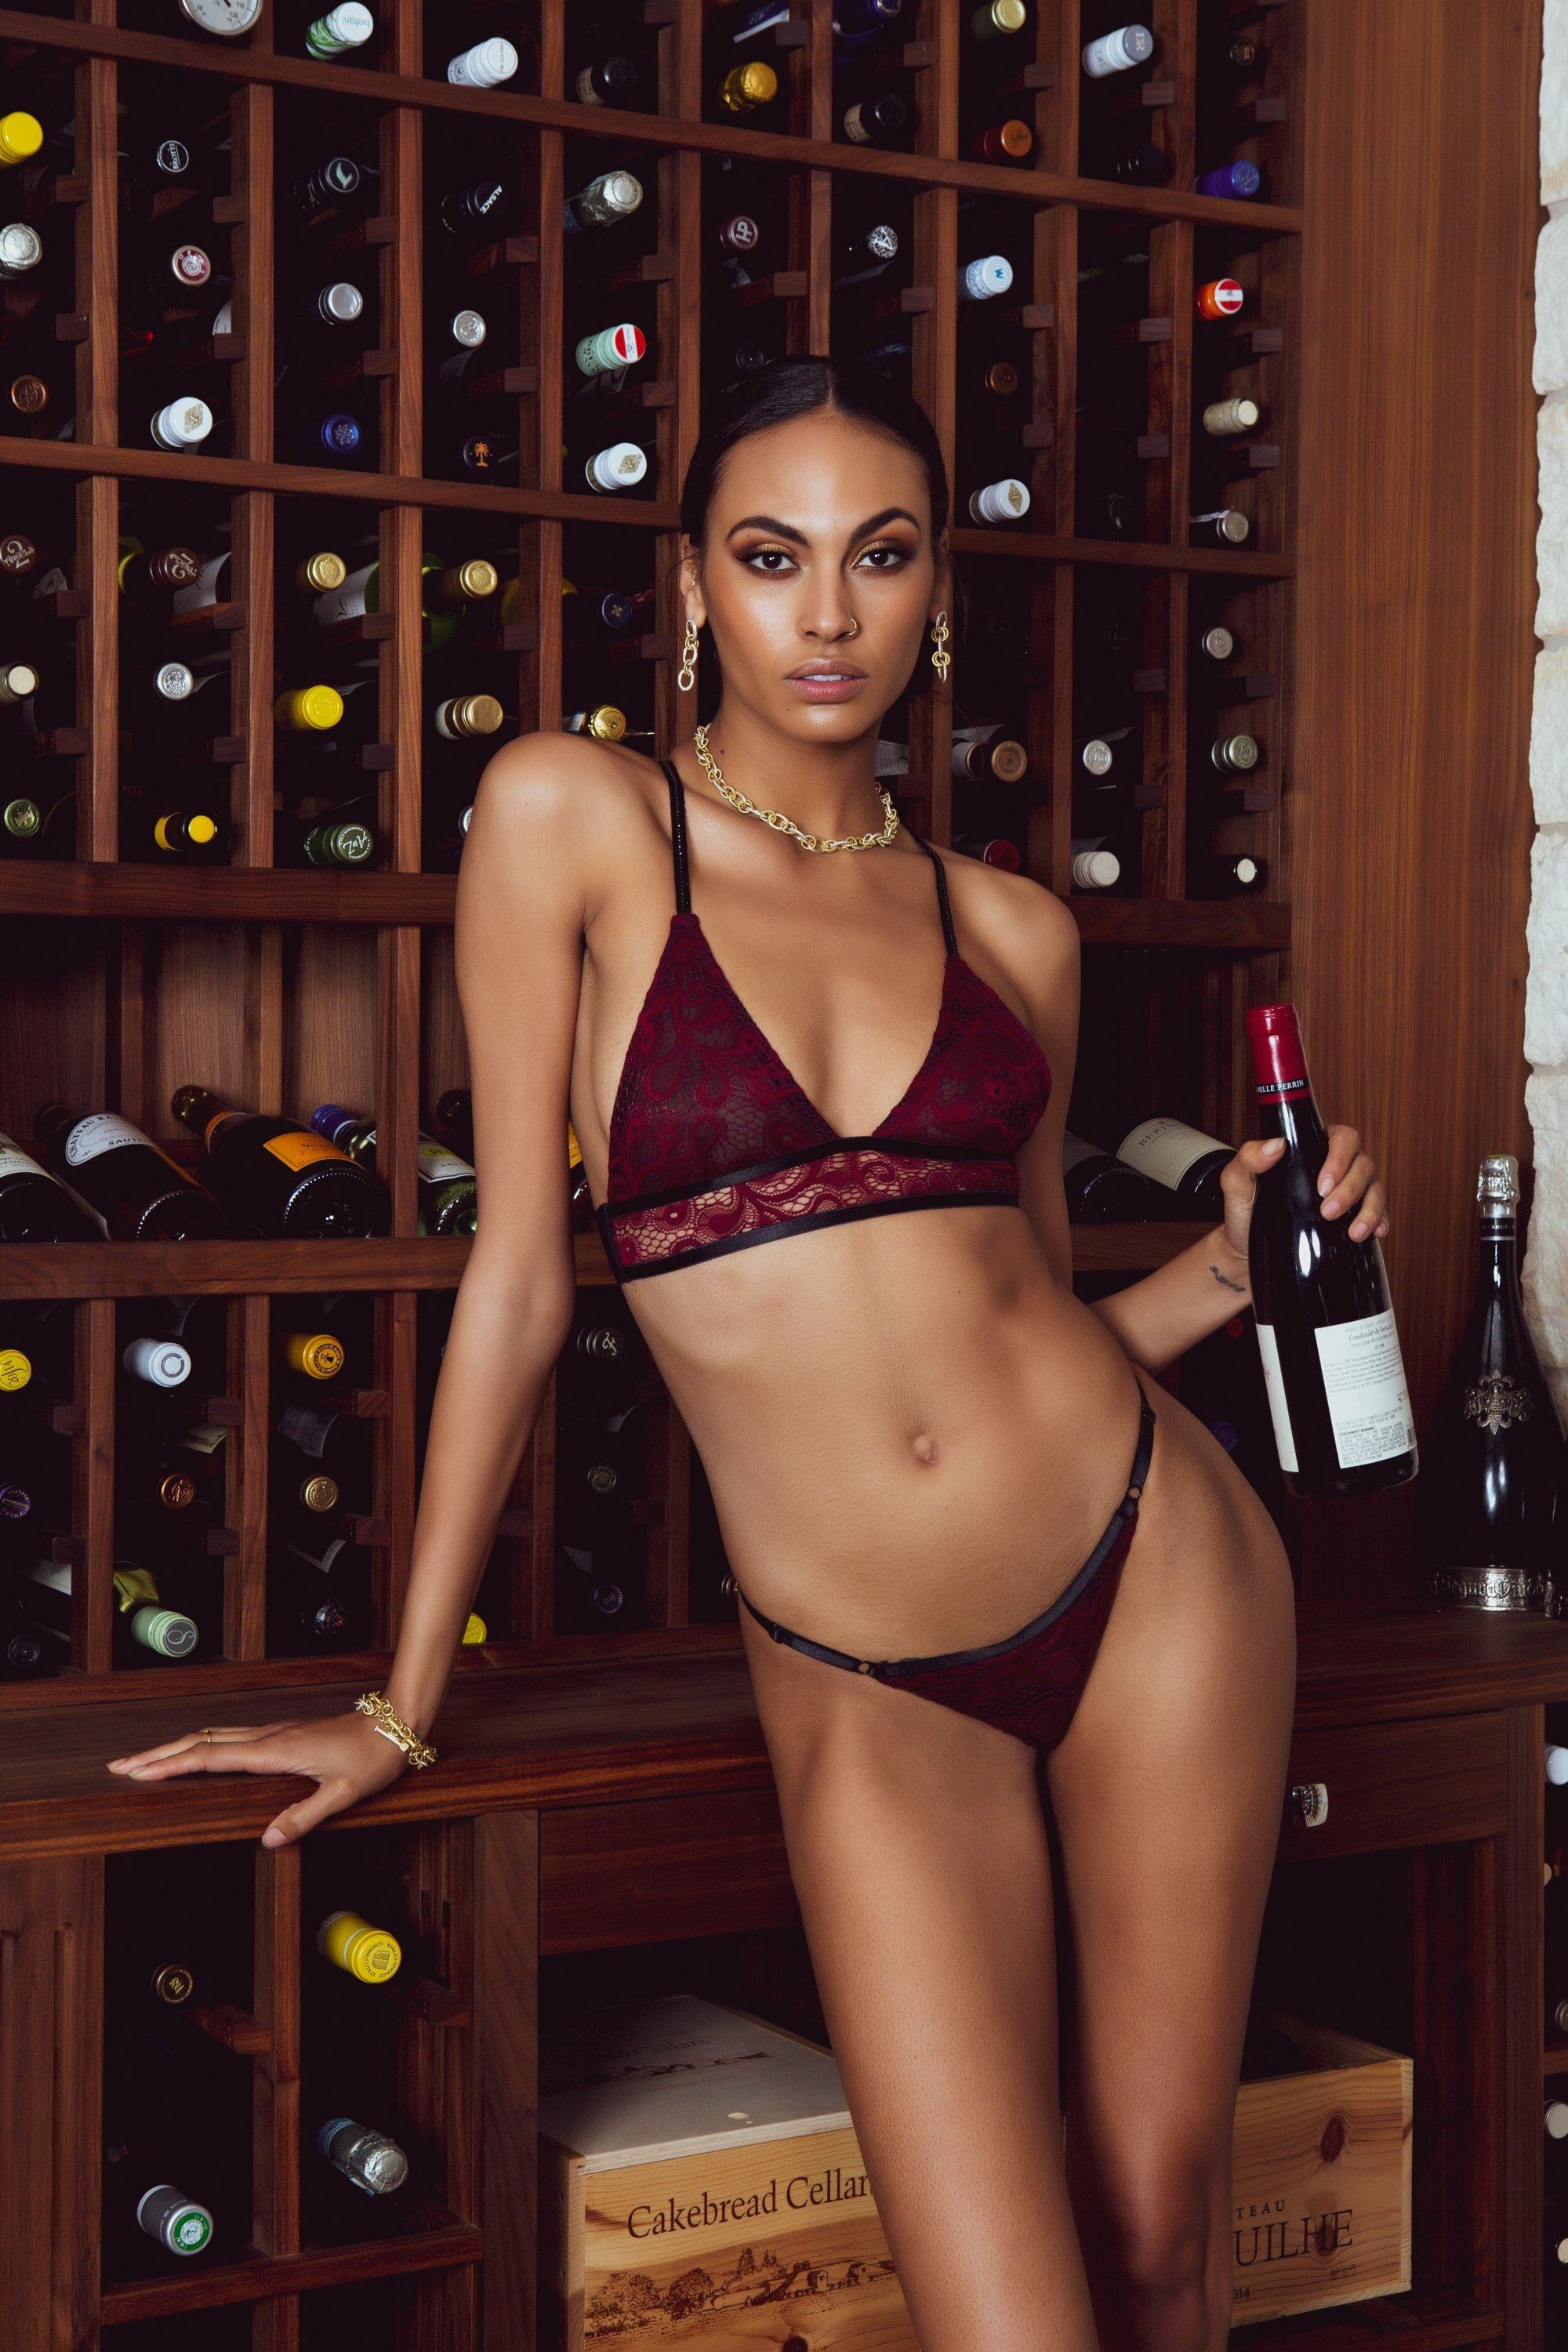 woman wearing red/black lace bra and panty holding bottle of wine in front of wine rack